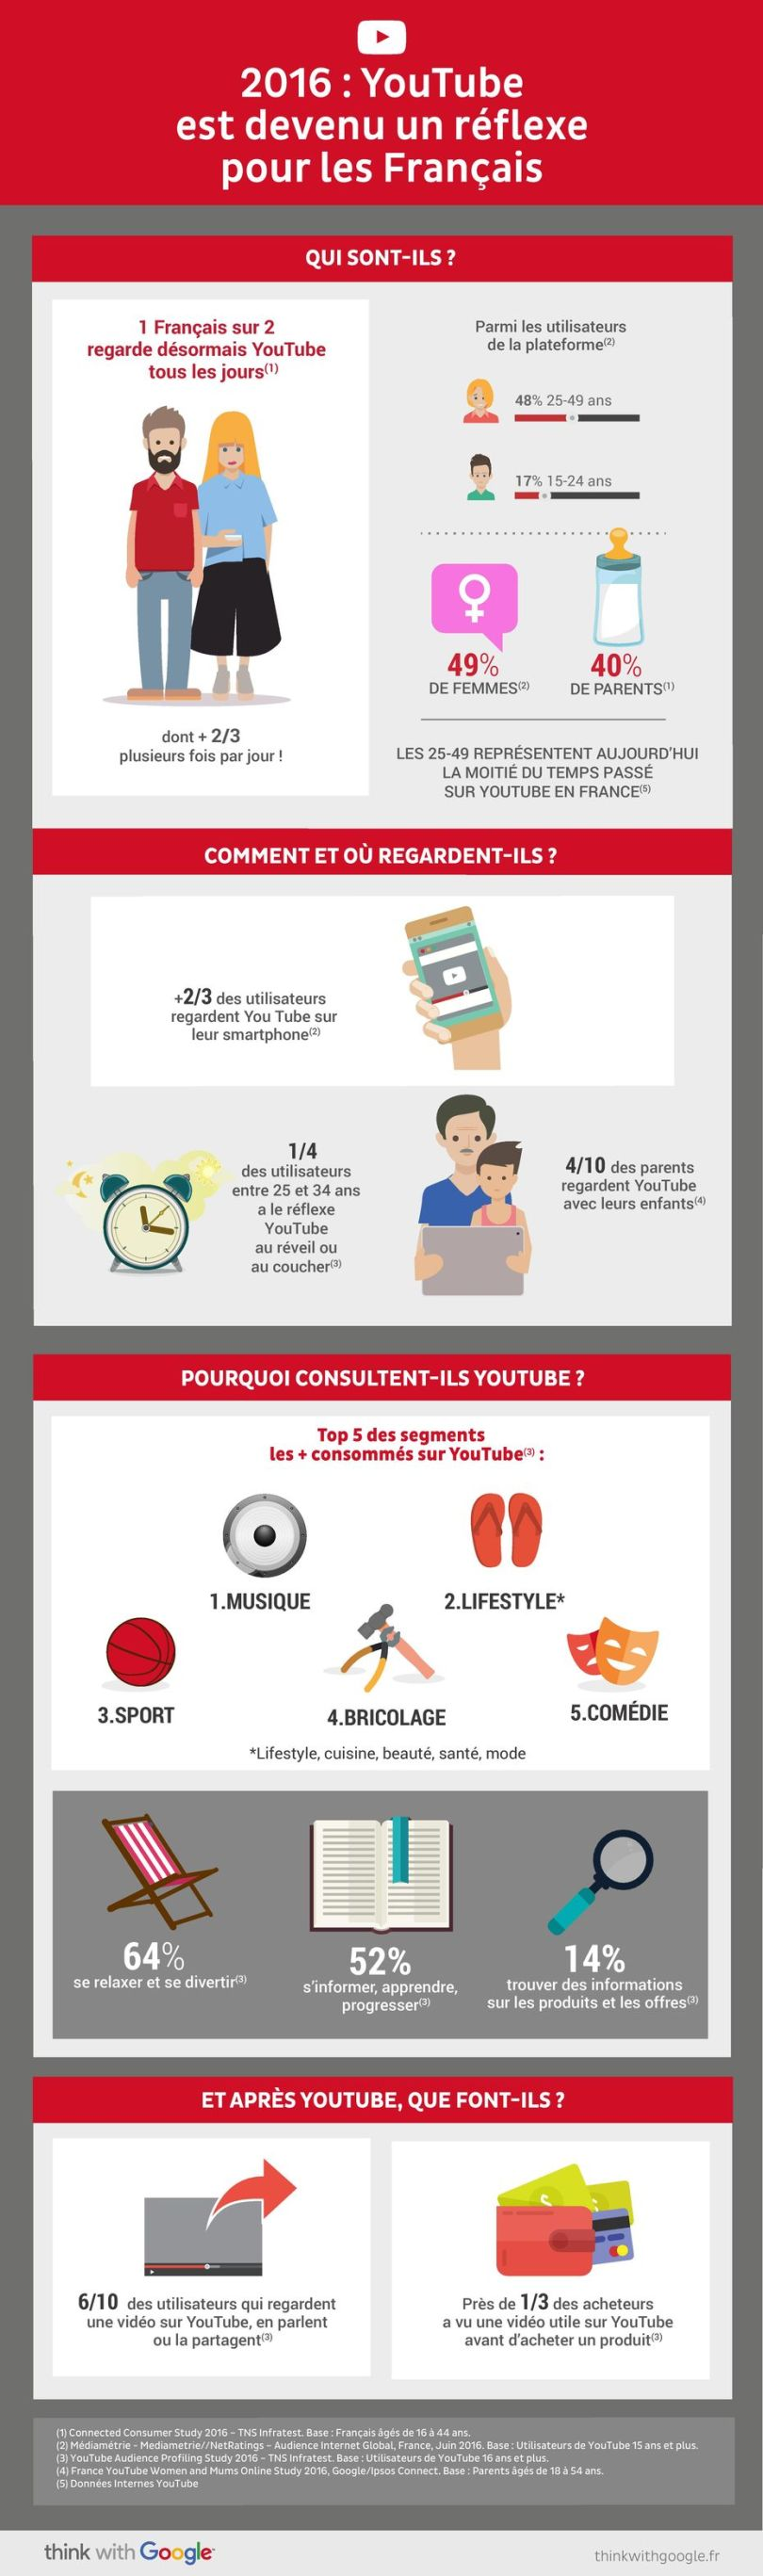 infographie-you-tube-monsieur-commerce